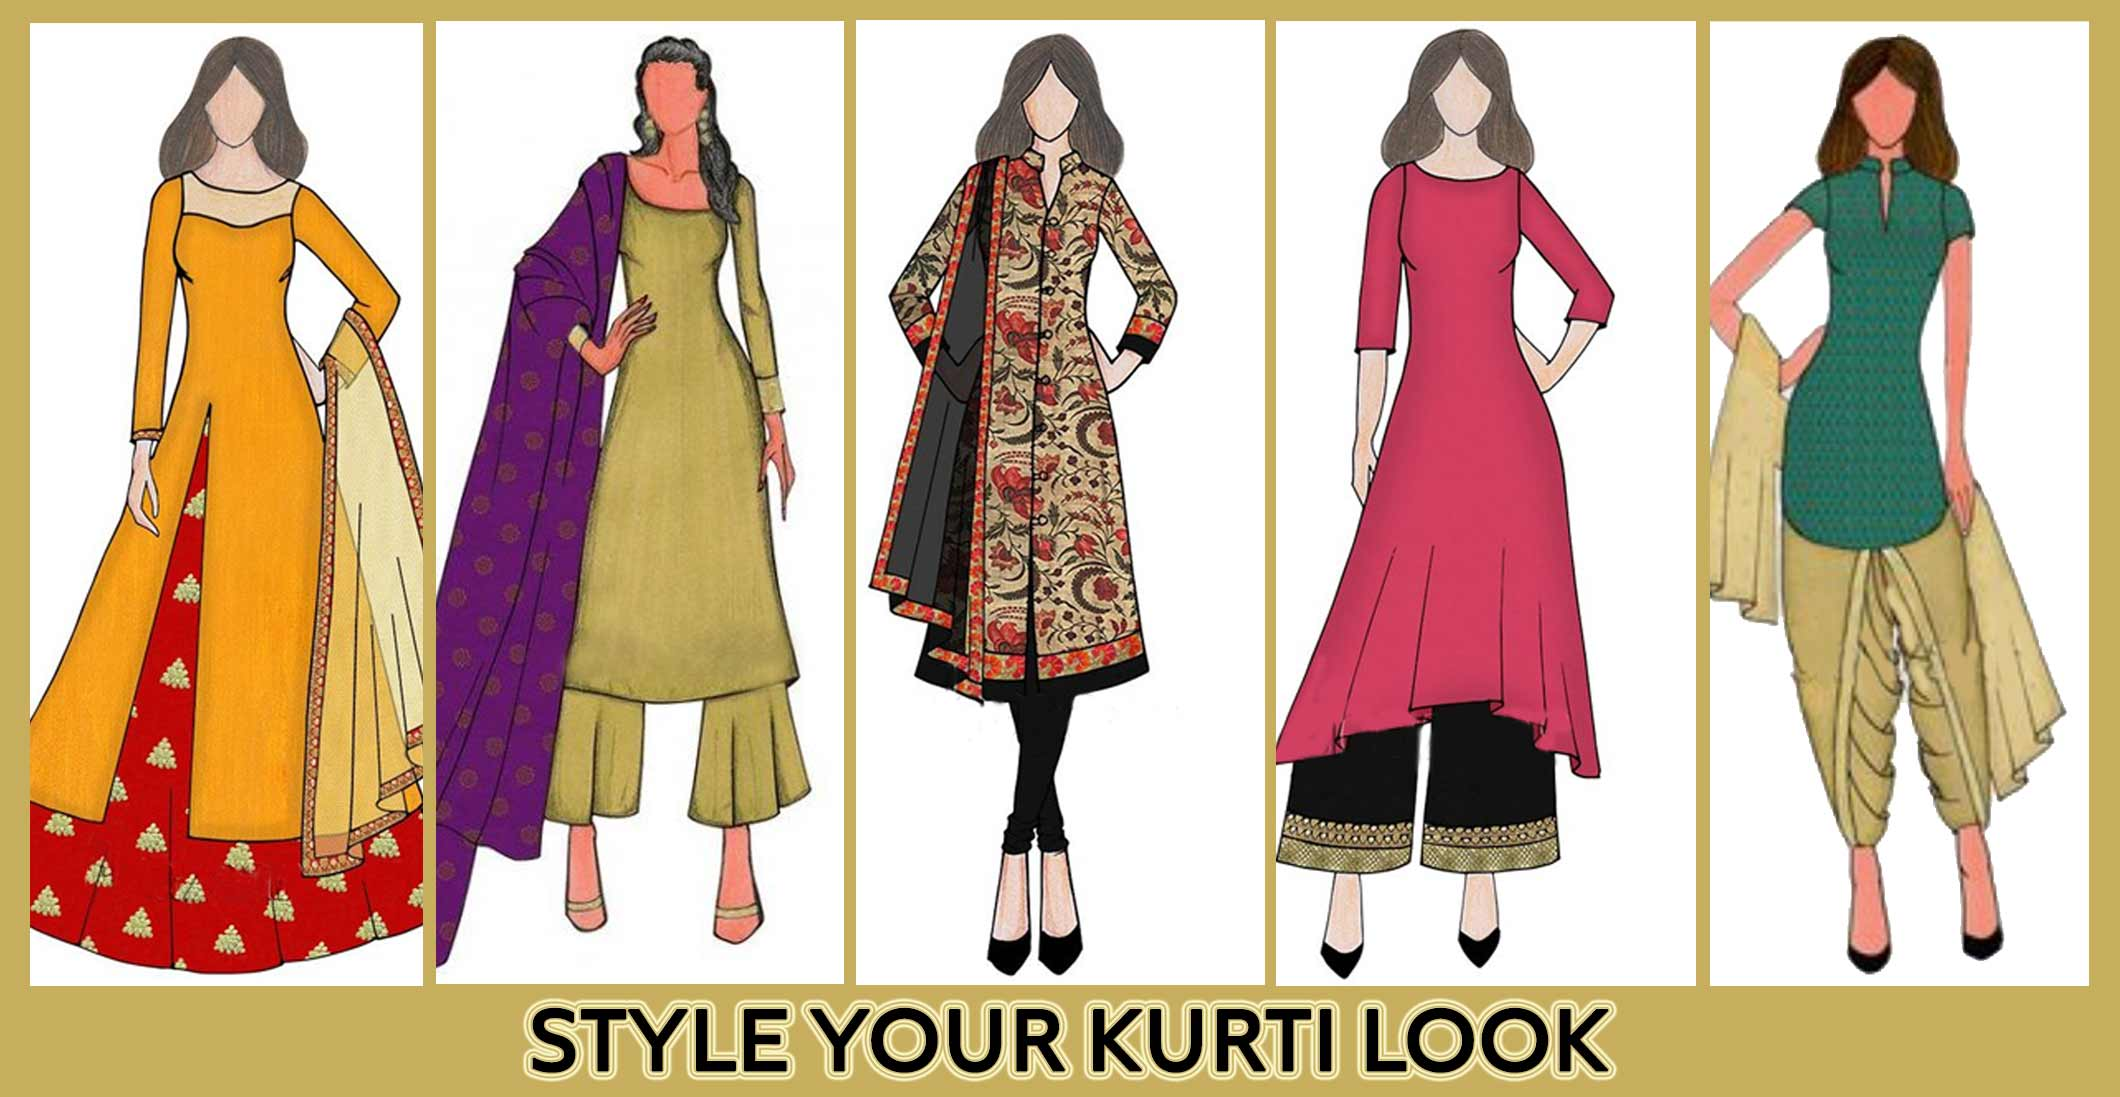 STYLE HACKS TO LOOK SLIM IN KURTIS